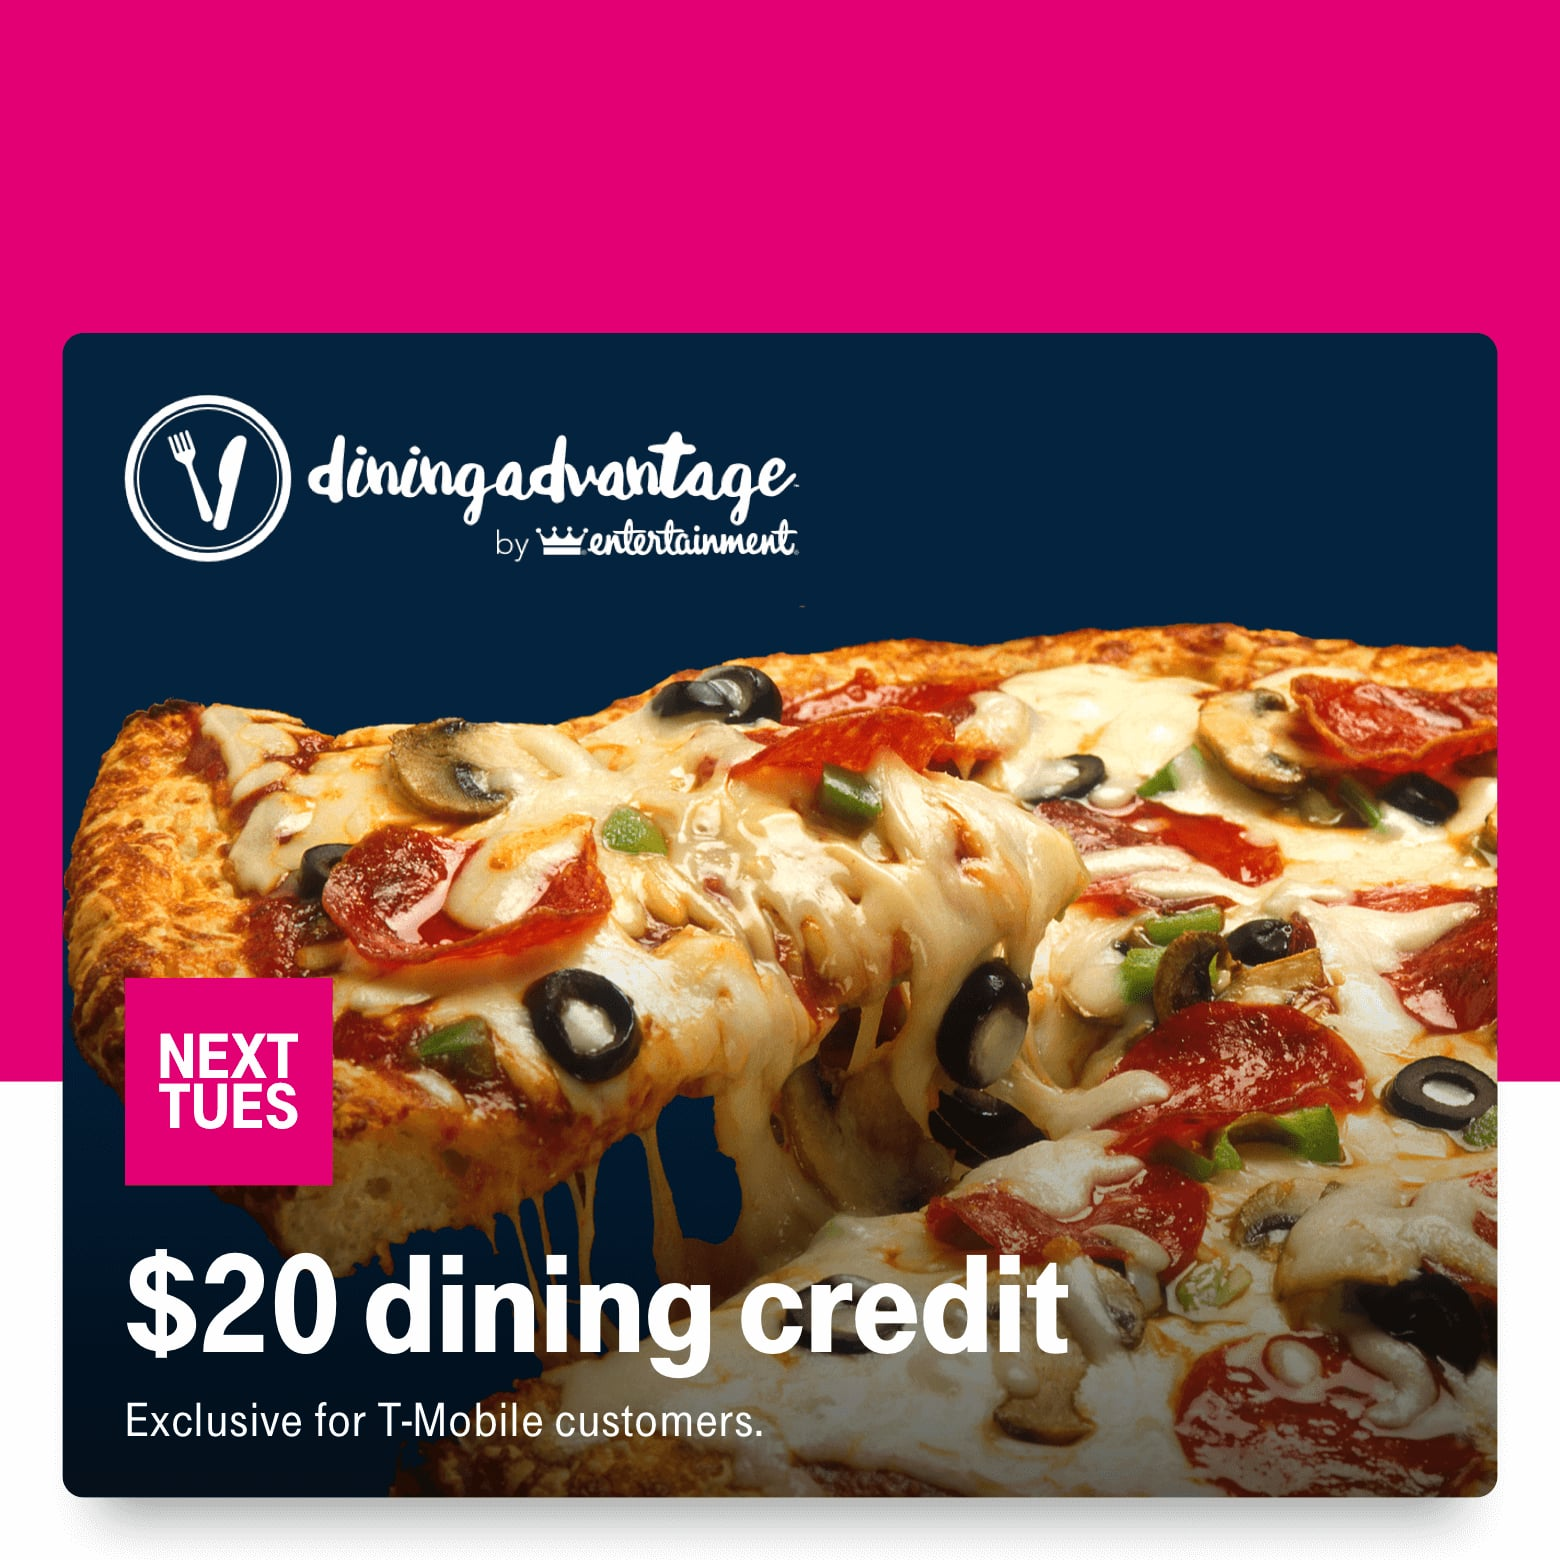 T-Mobile Customers 11/19: $20 Dining Credit, Puma 40% off